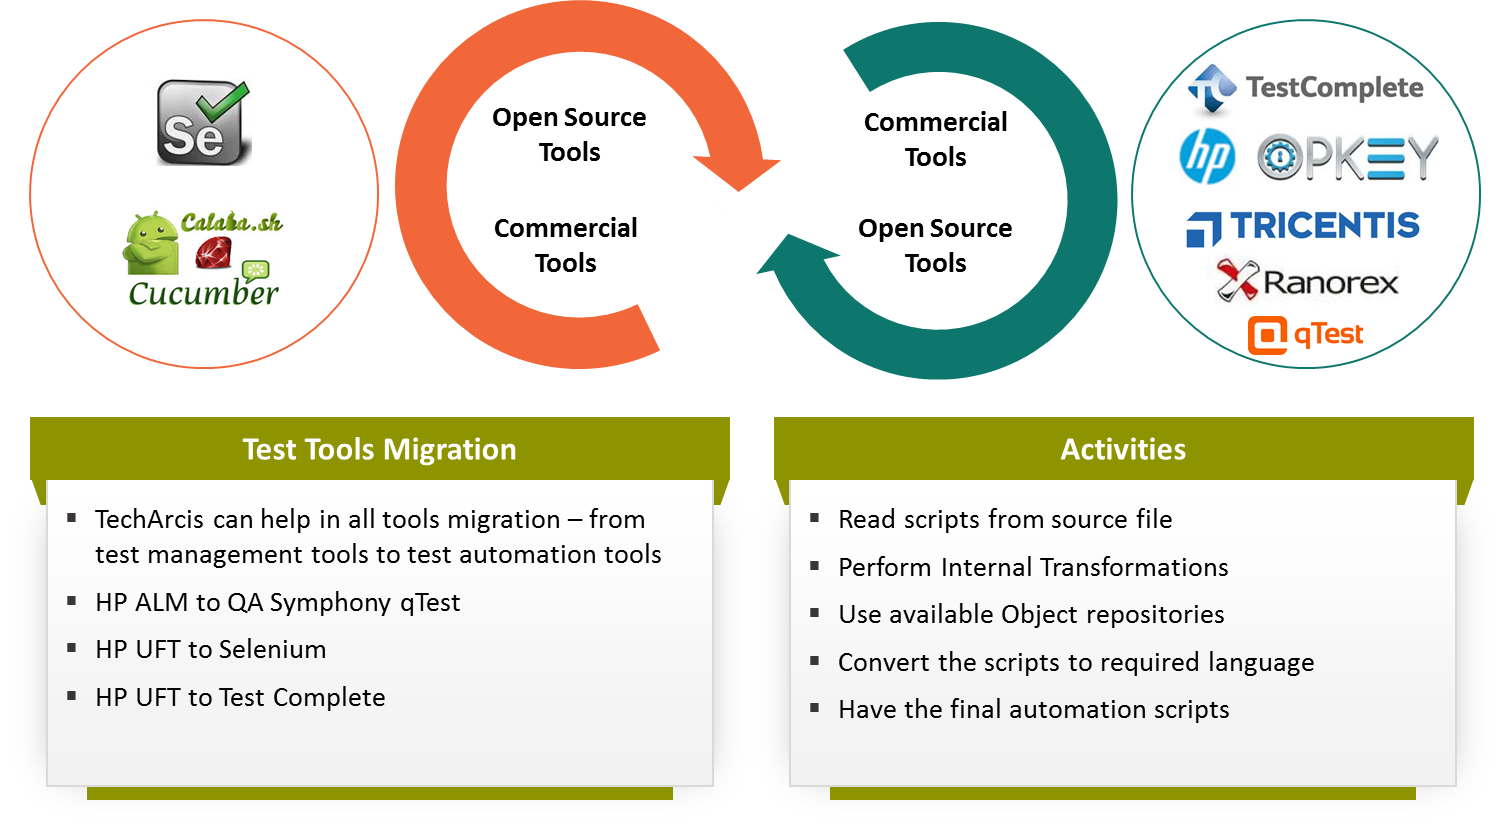 Test Tools Migration - TechArcis Solutions